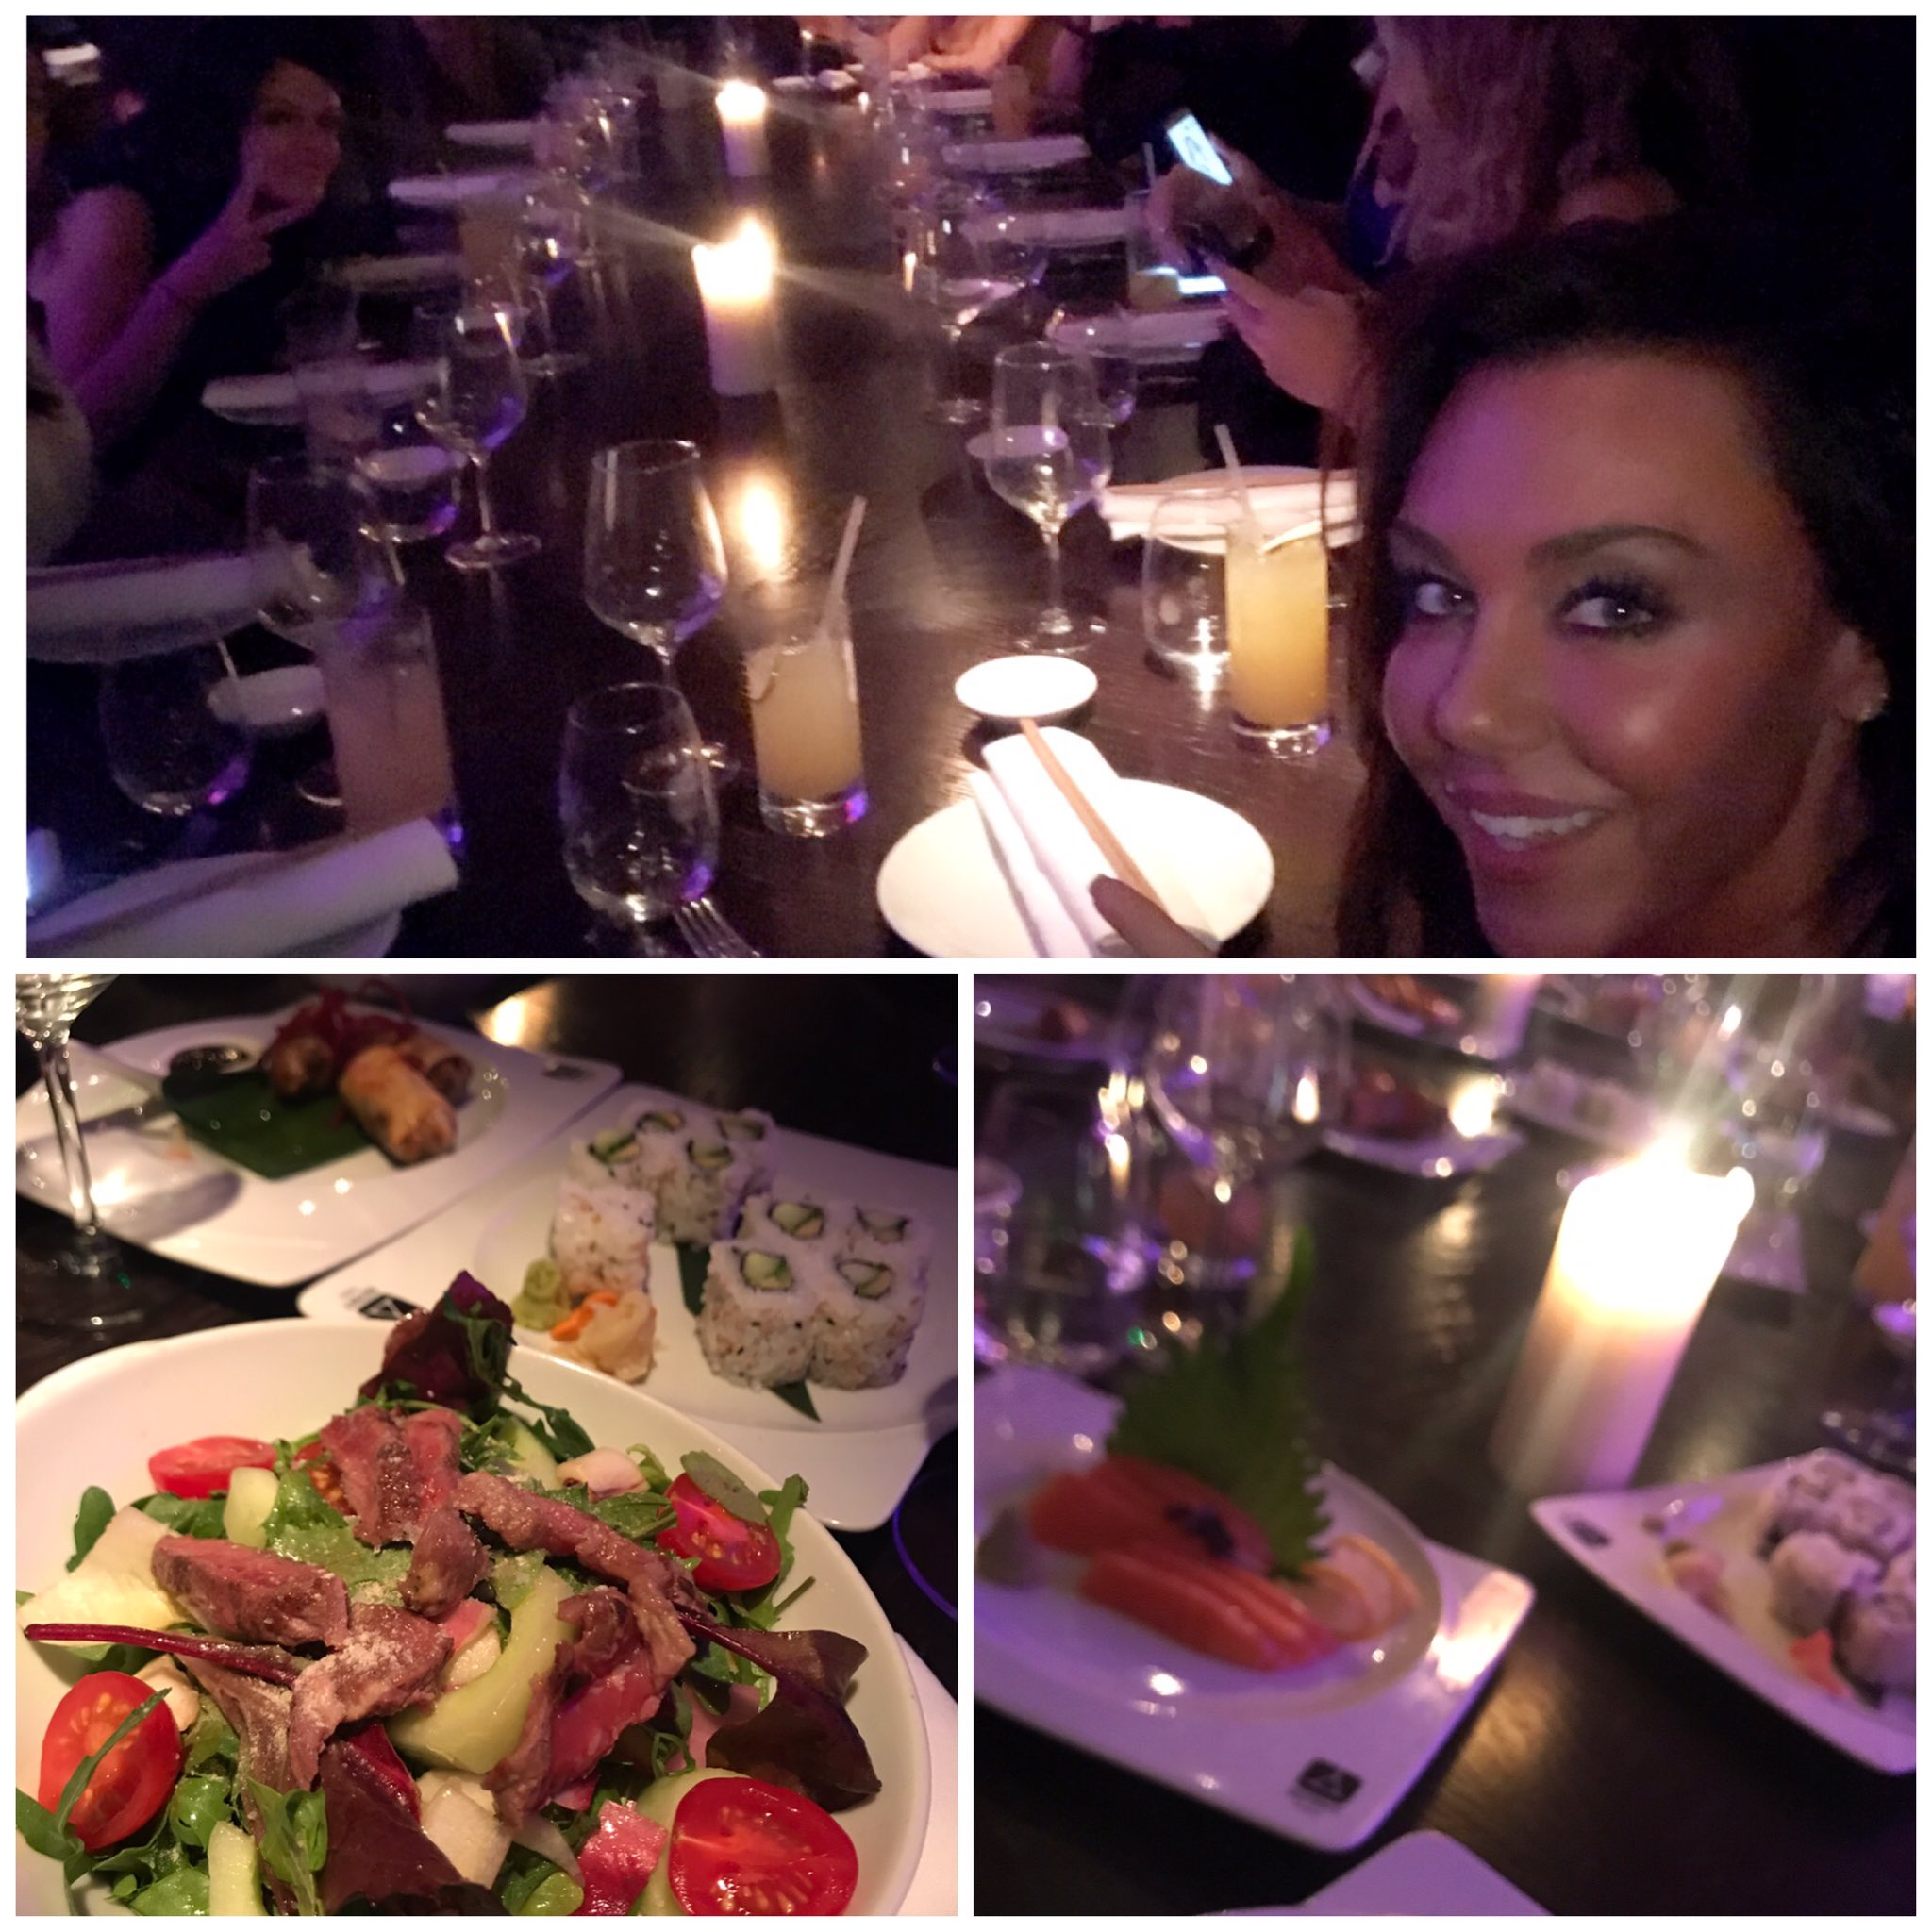 Wow .. this is only the starters ... #food #foodporn @dstrktlondon https://t.co/DXU1hwhWwA